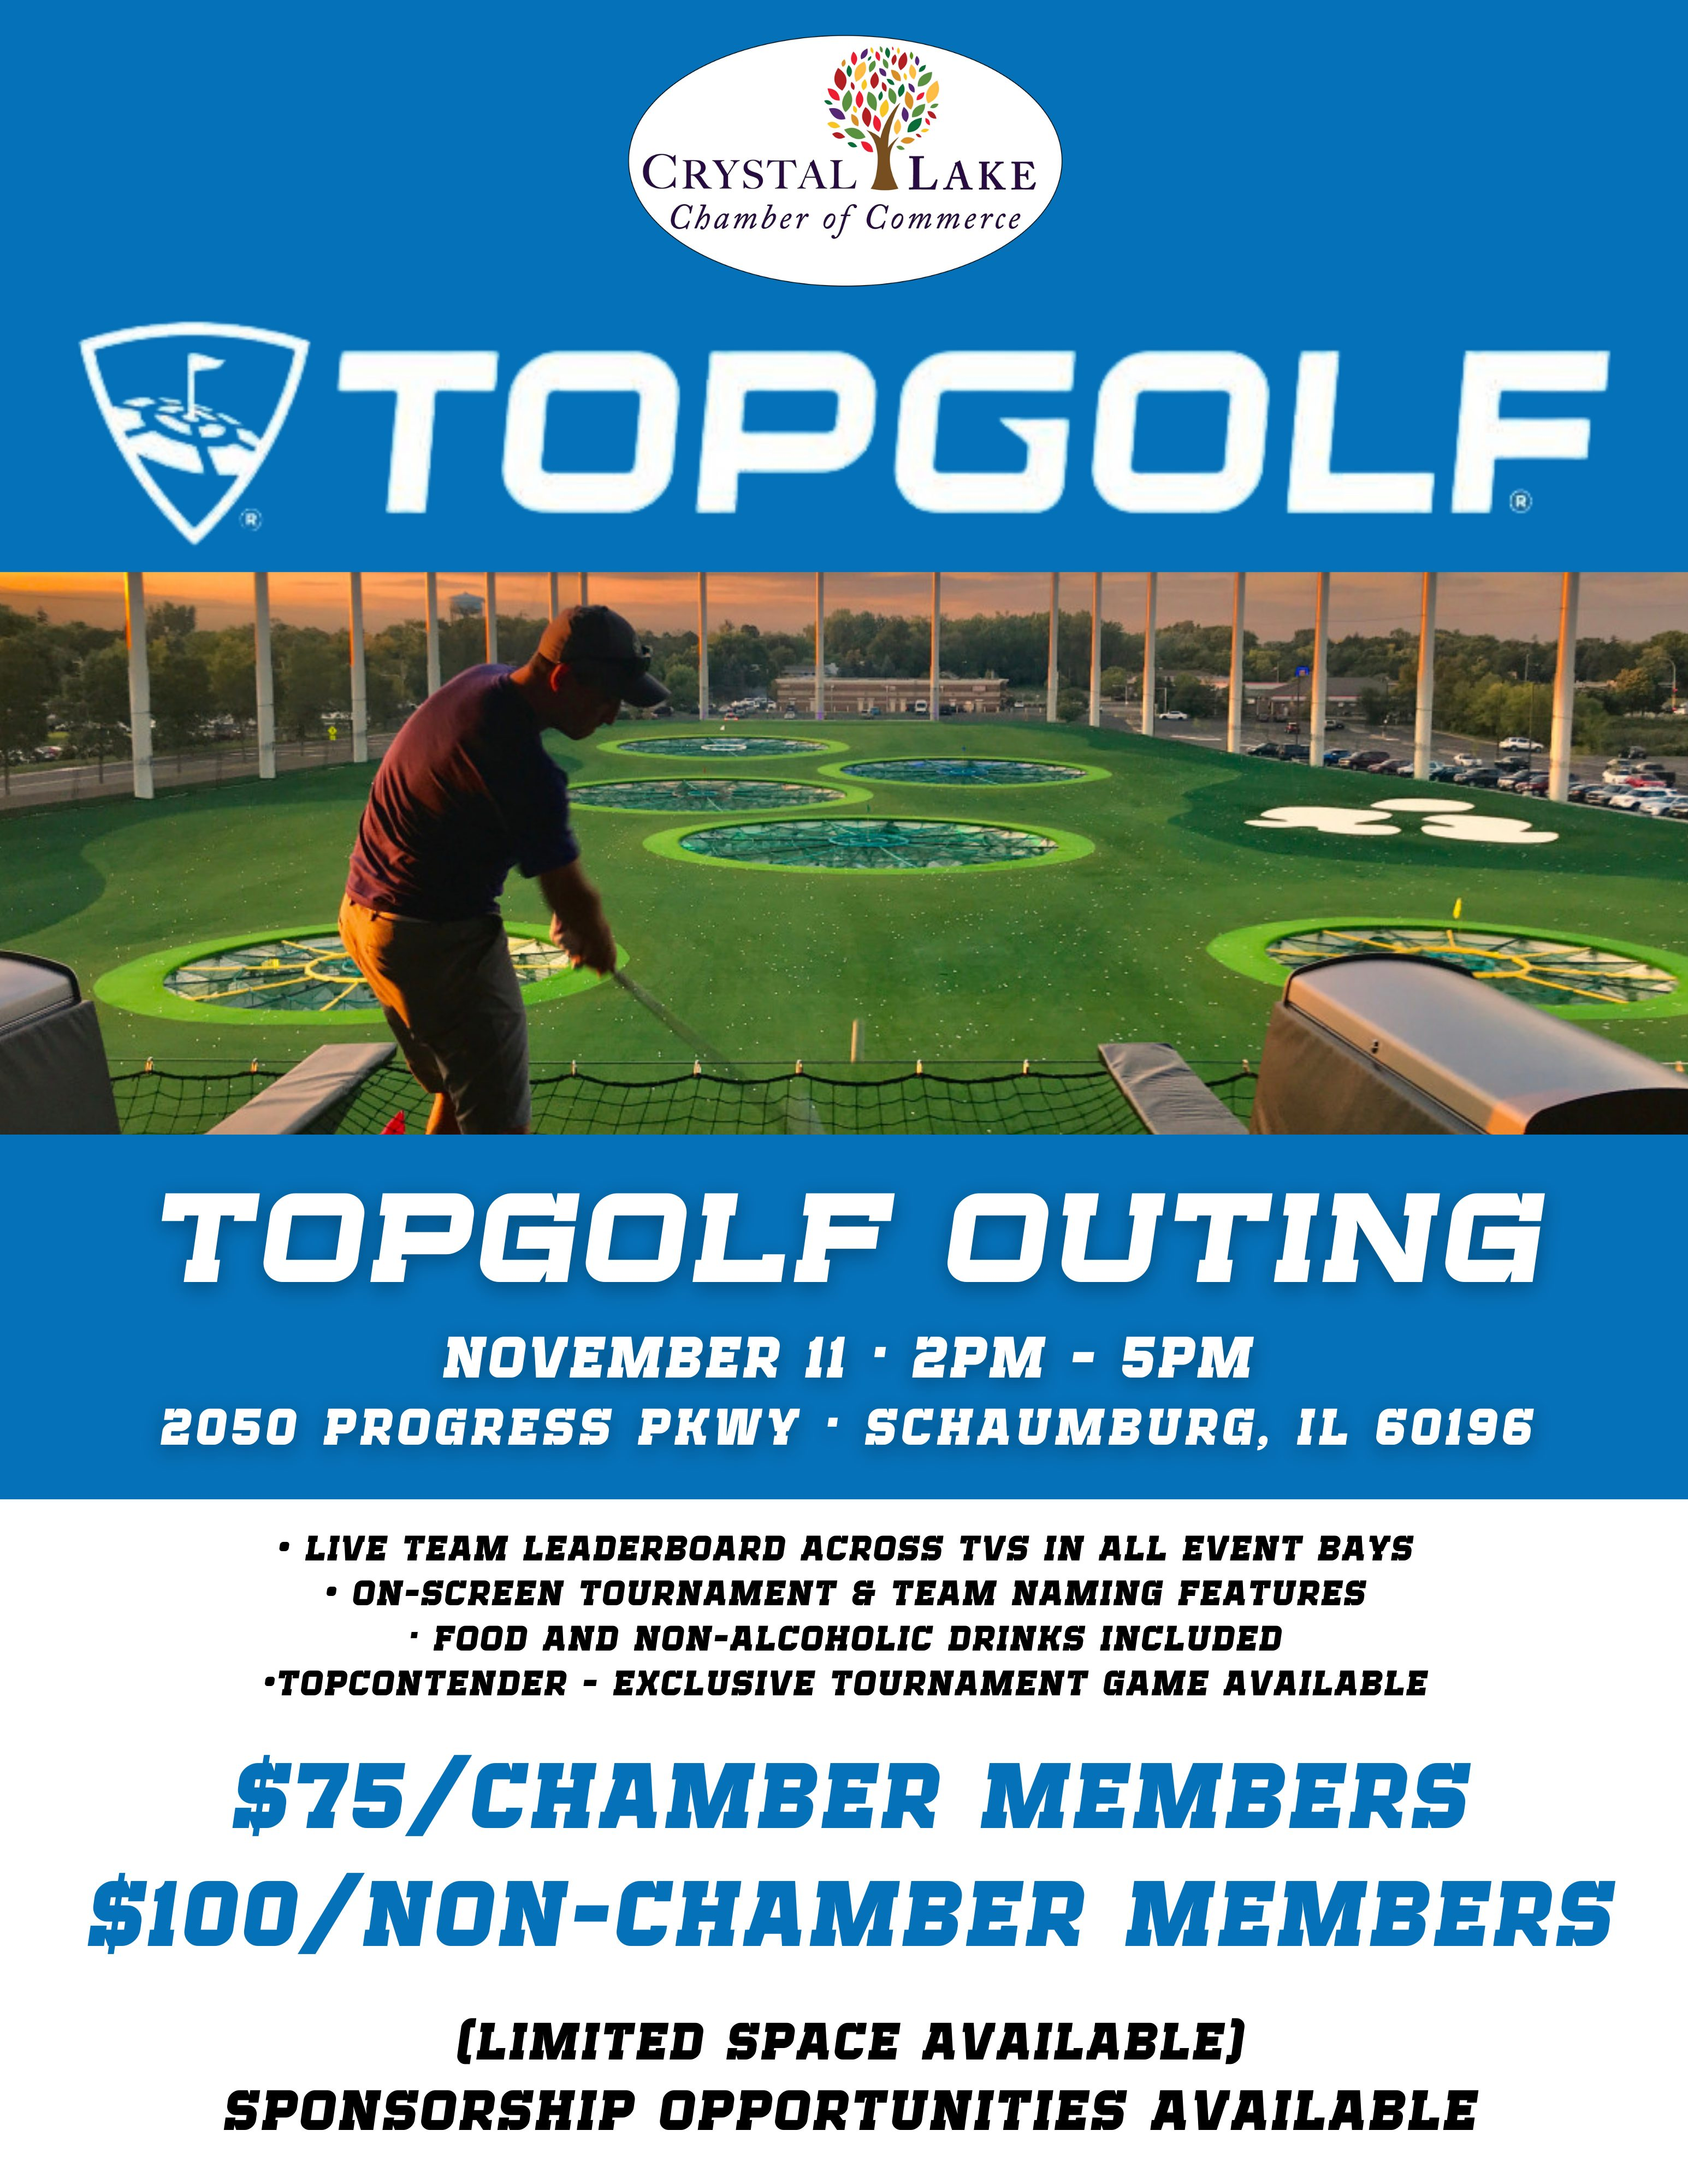 Topgolf Outing